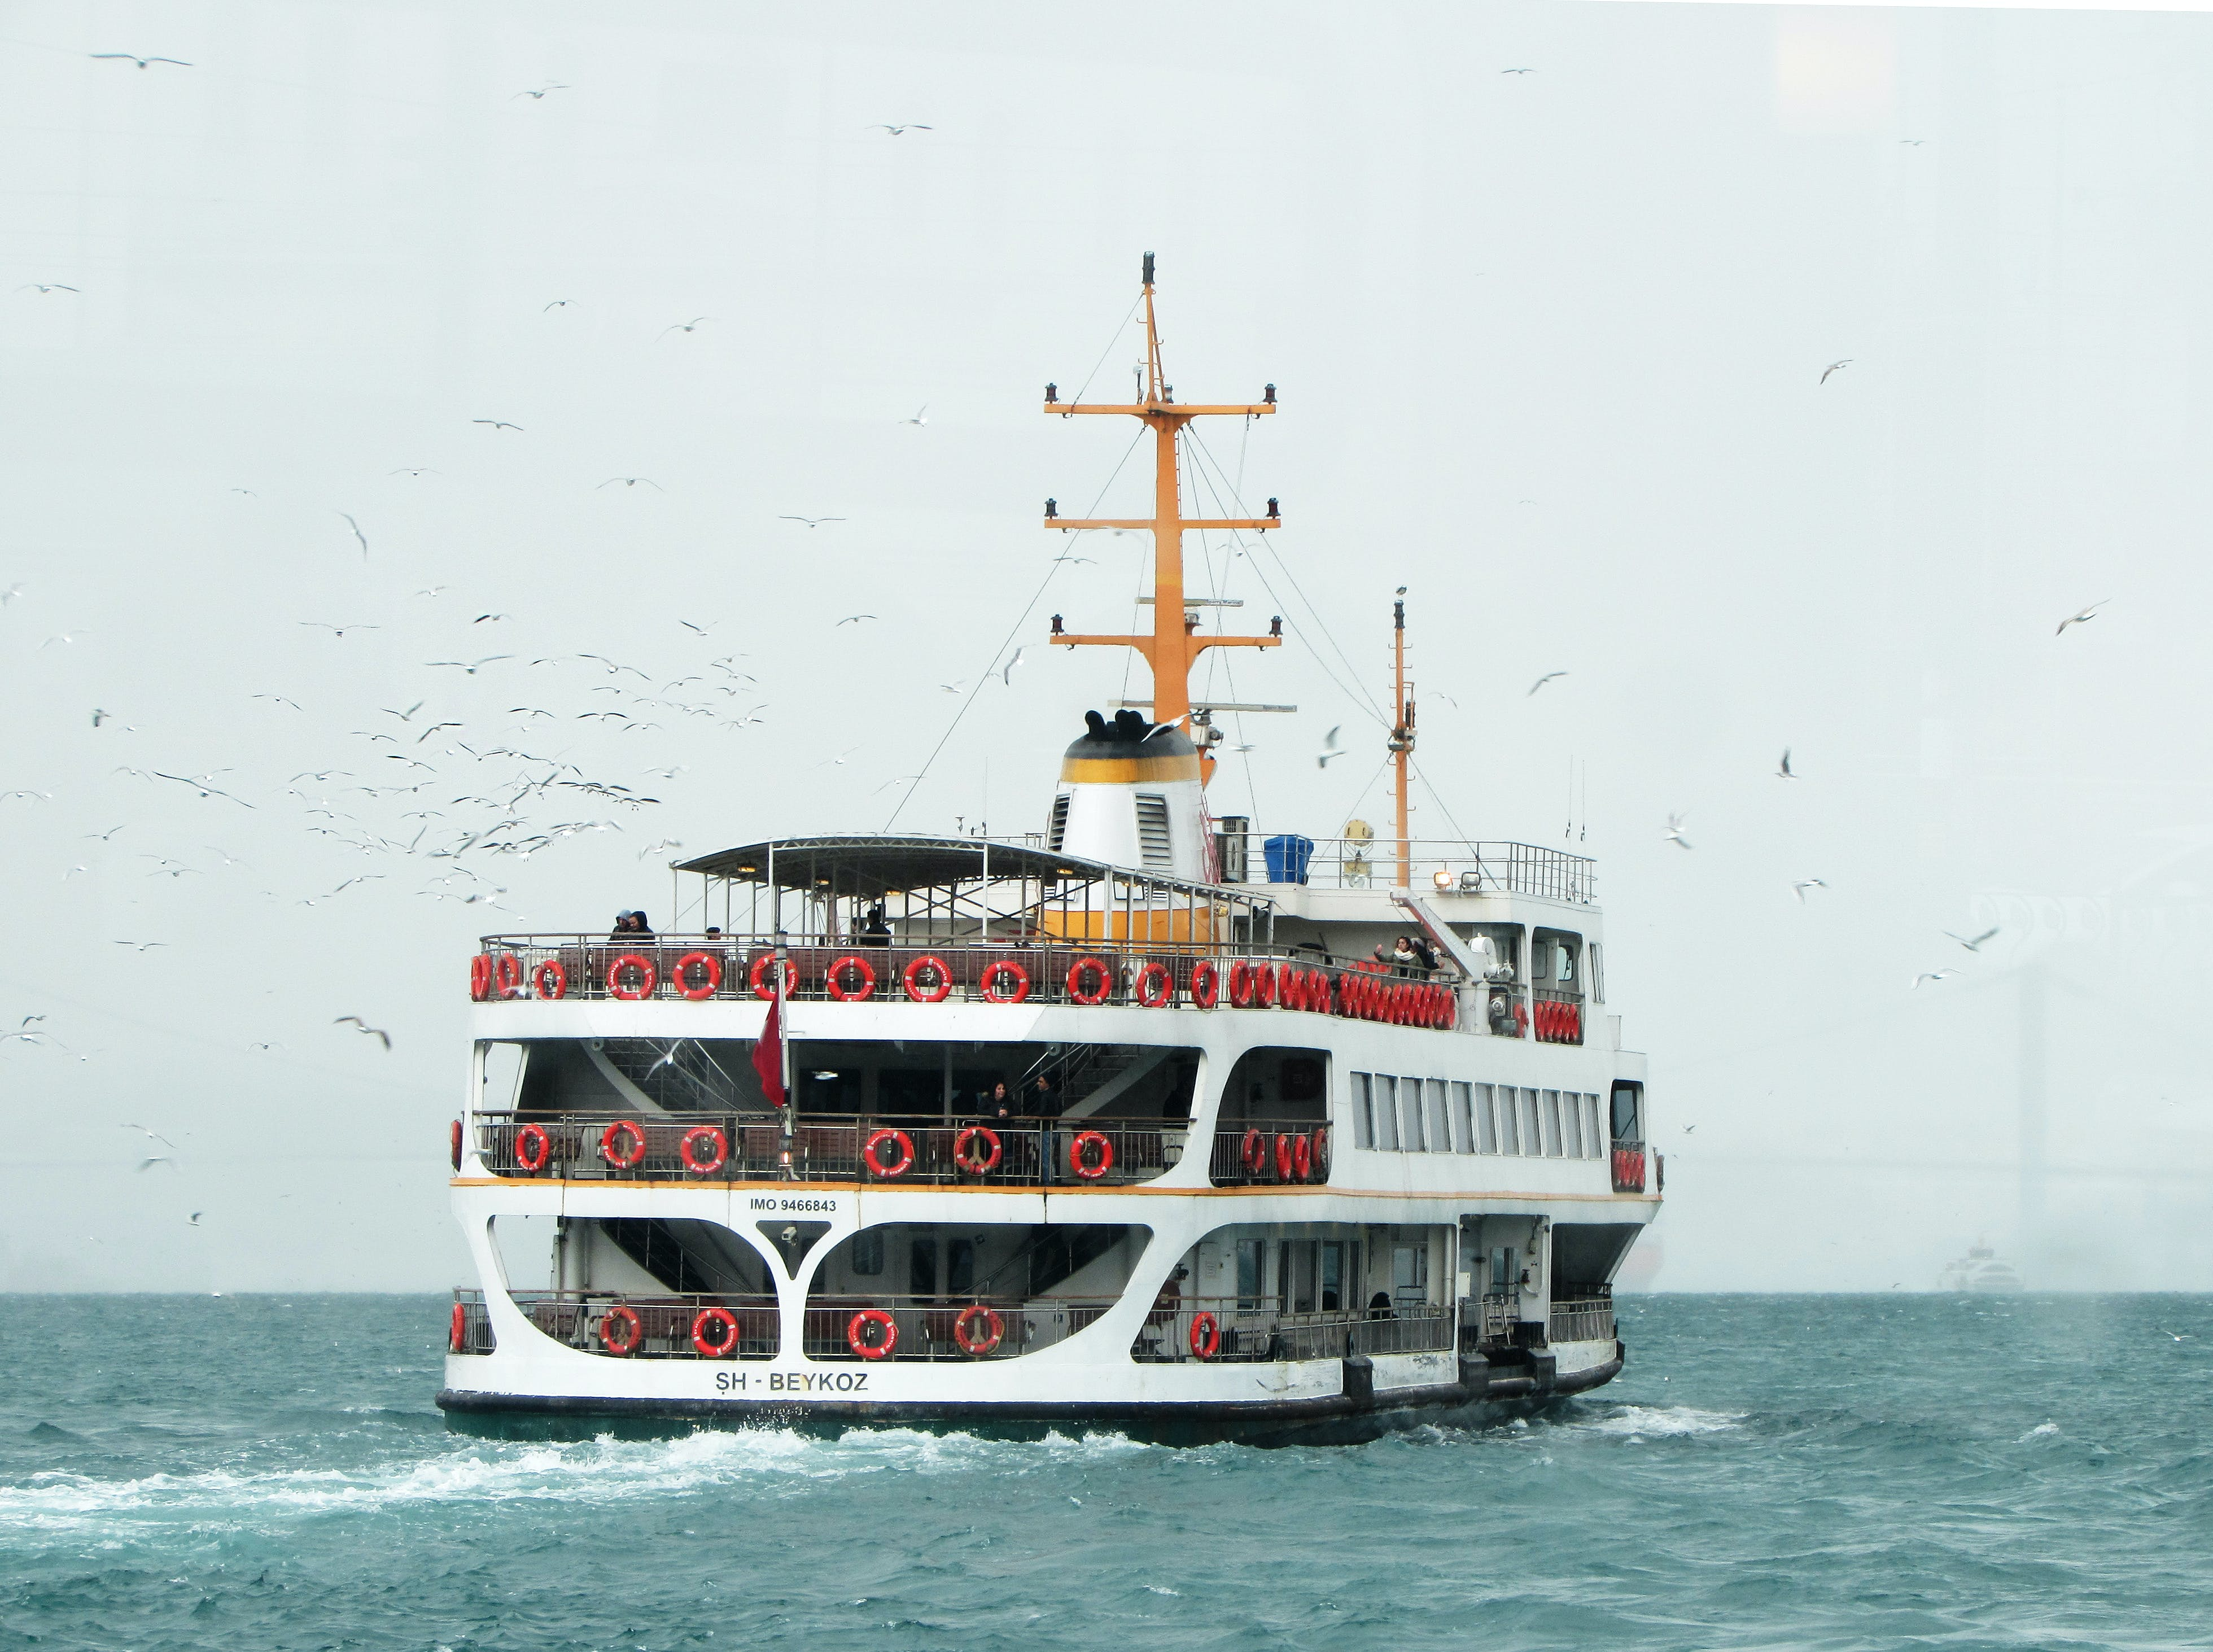 White Ship Traveling Through Vast Body of Water With White Birds Flying Beside